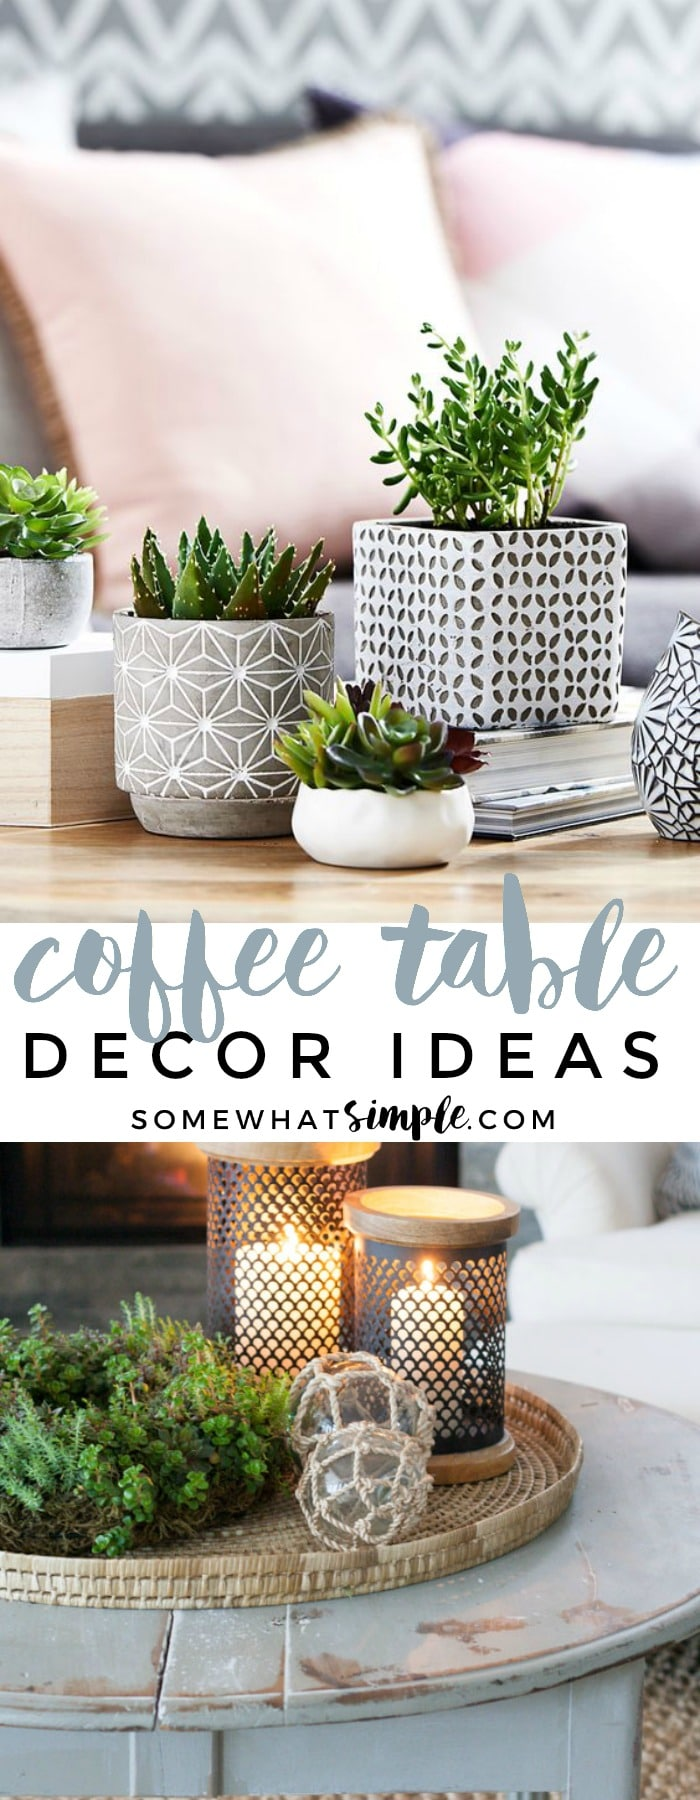 Ditch the junk mail, remotes and piles of magazines and get ready for a complete coffee table makeover! Here are 5 coffee table decor ideas that will set a beautiful stage for your entire living room! via @somewhatsimple